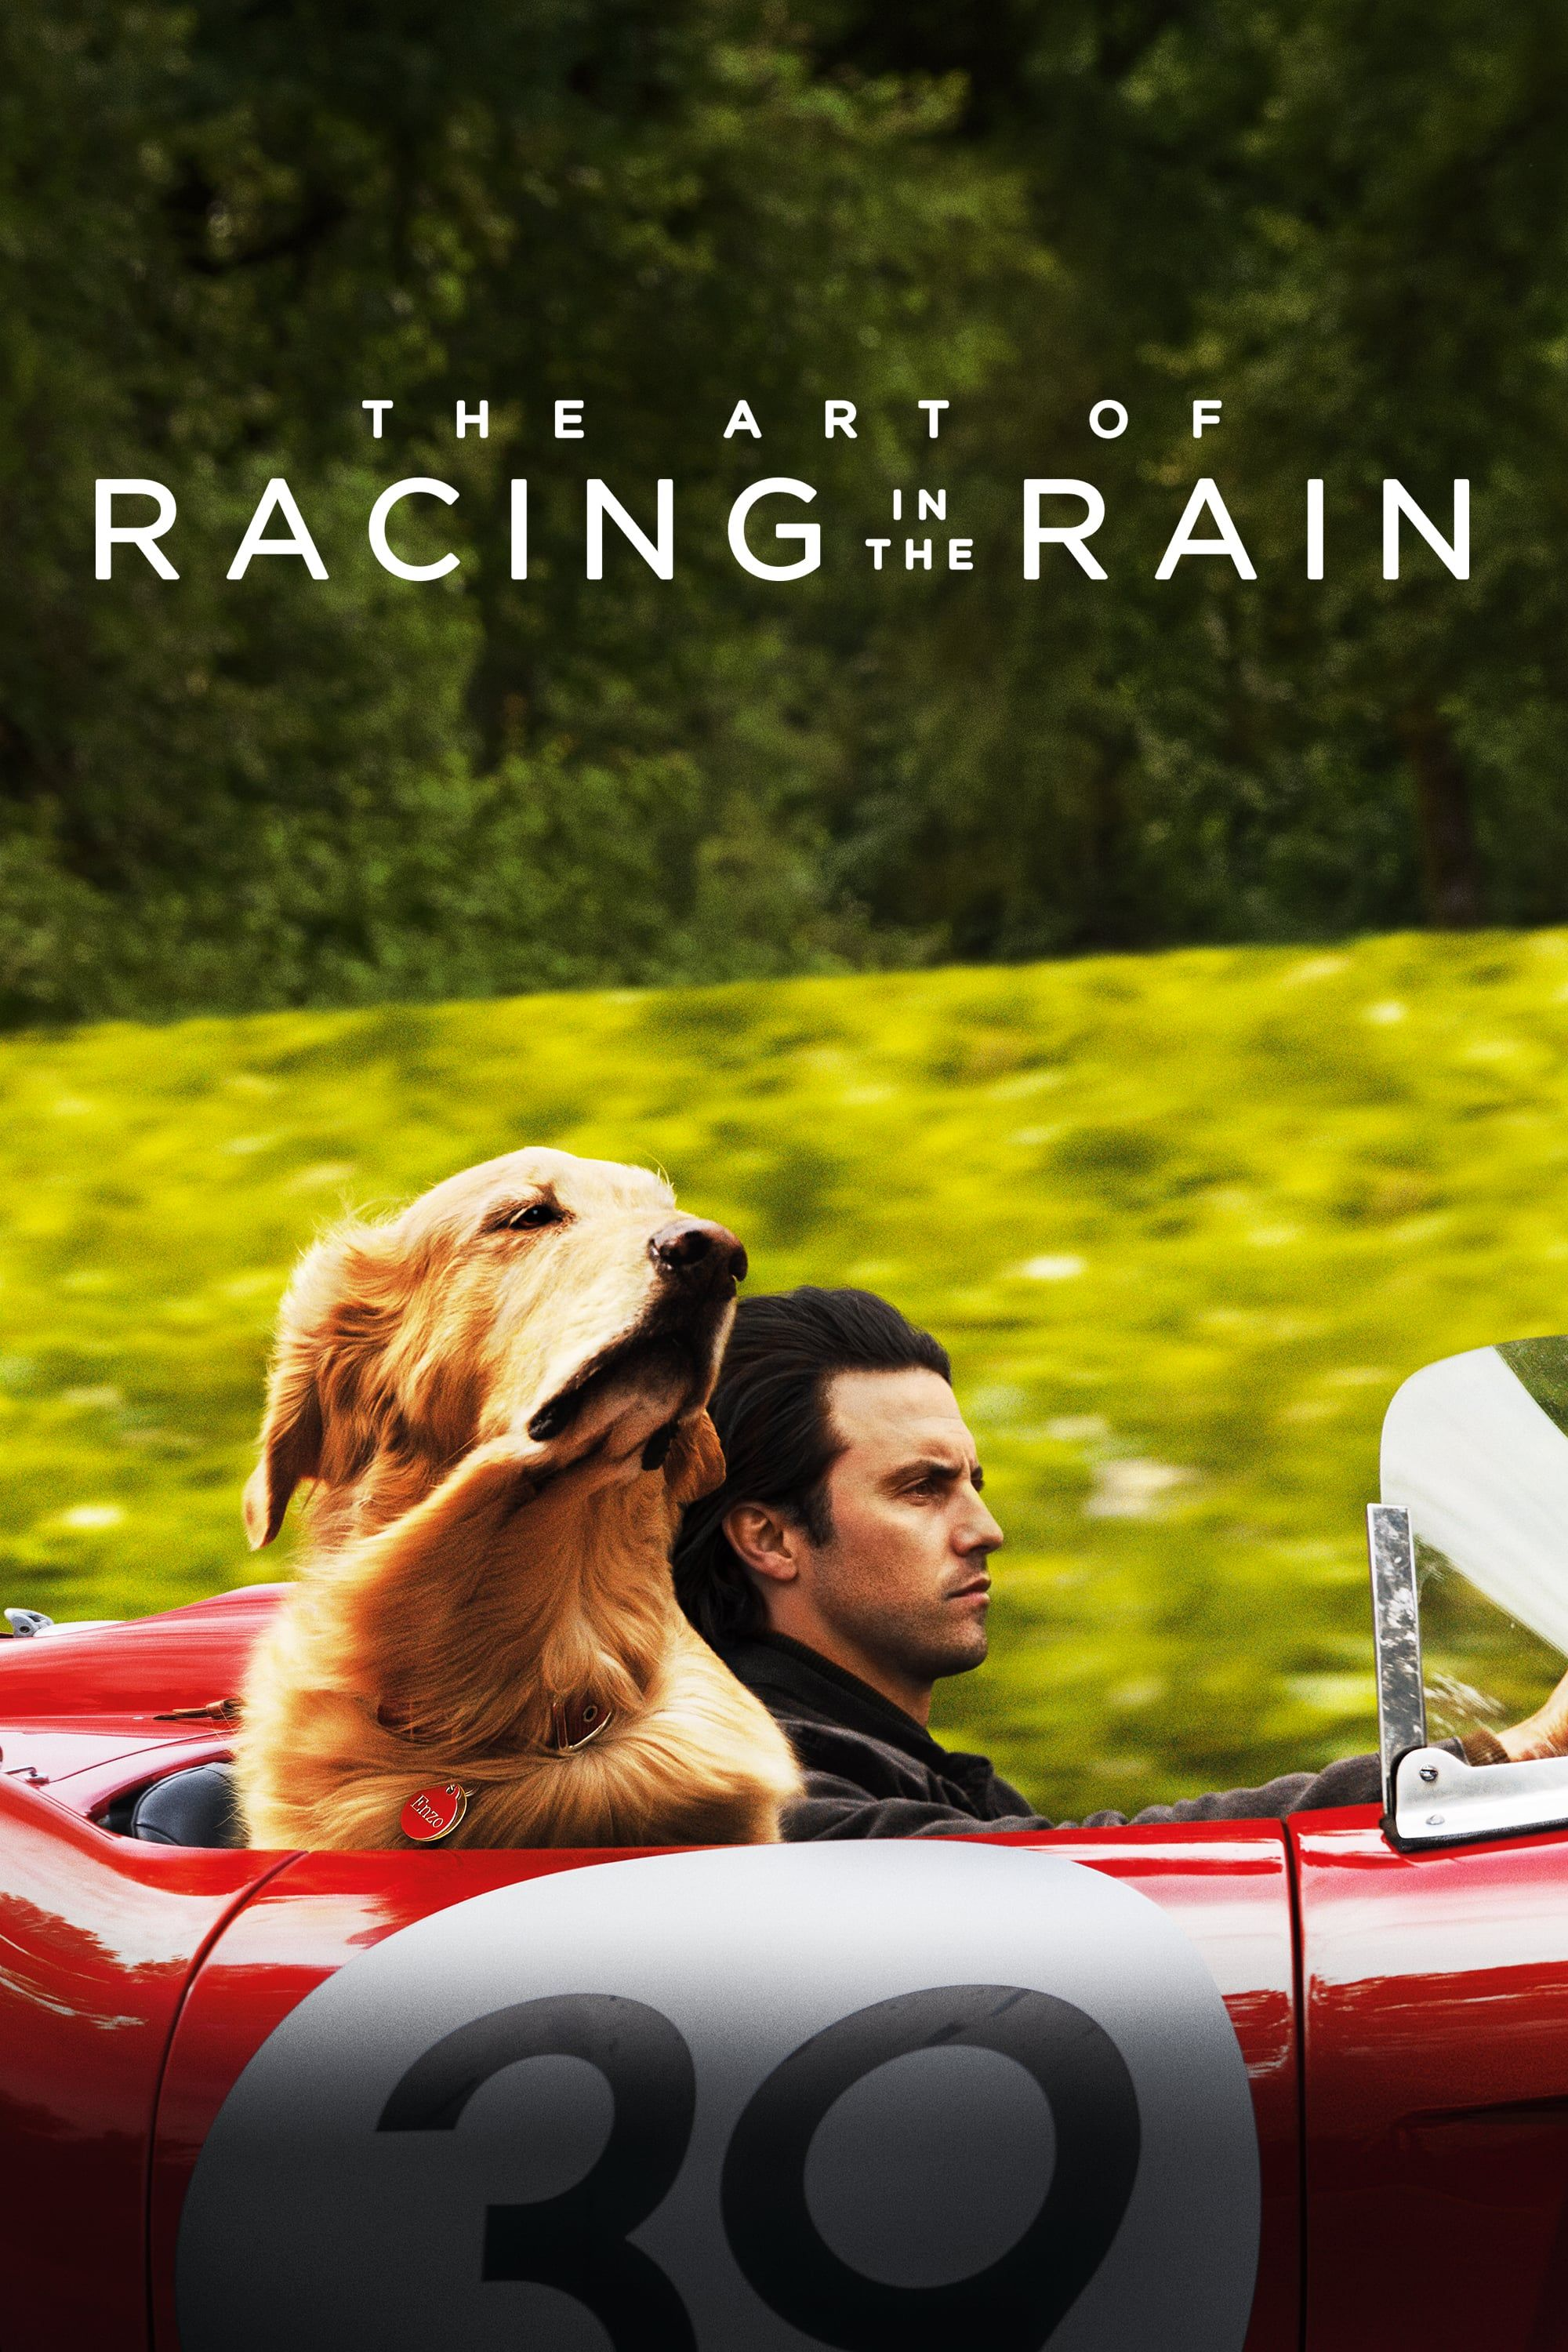 Hd 1080 The Art Of Racing In The Rain 8249 8801 9662 Film Complet Dubla Full Movies Full Movies Online Free The Rain Movie